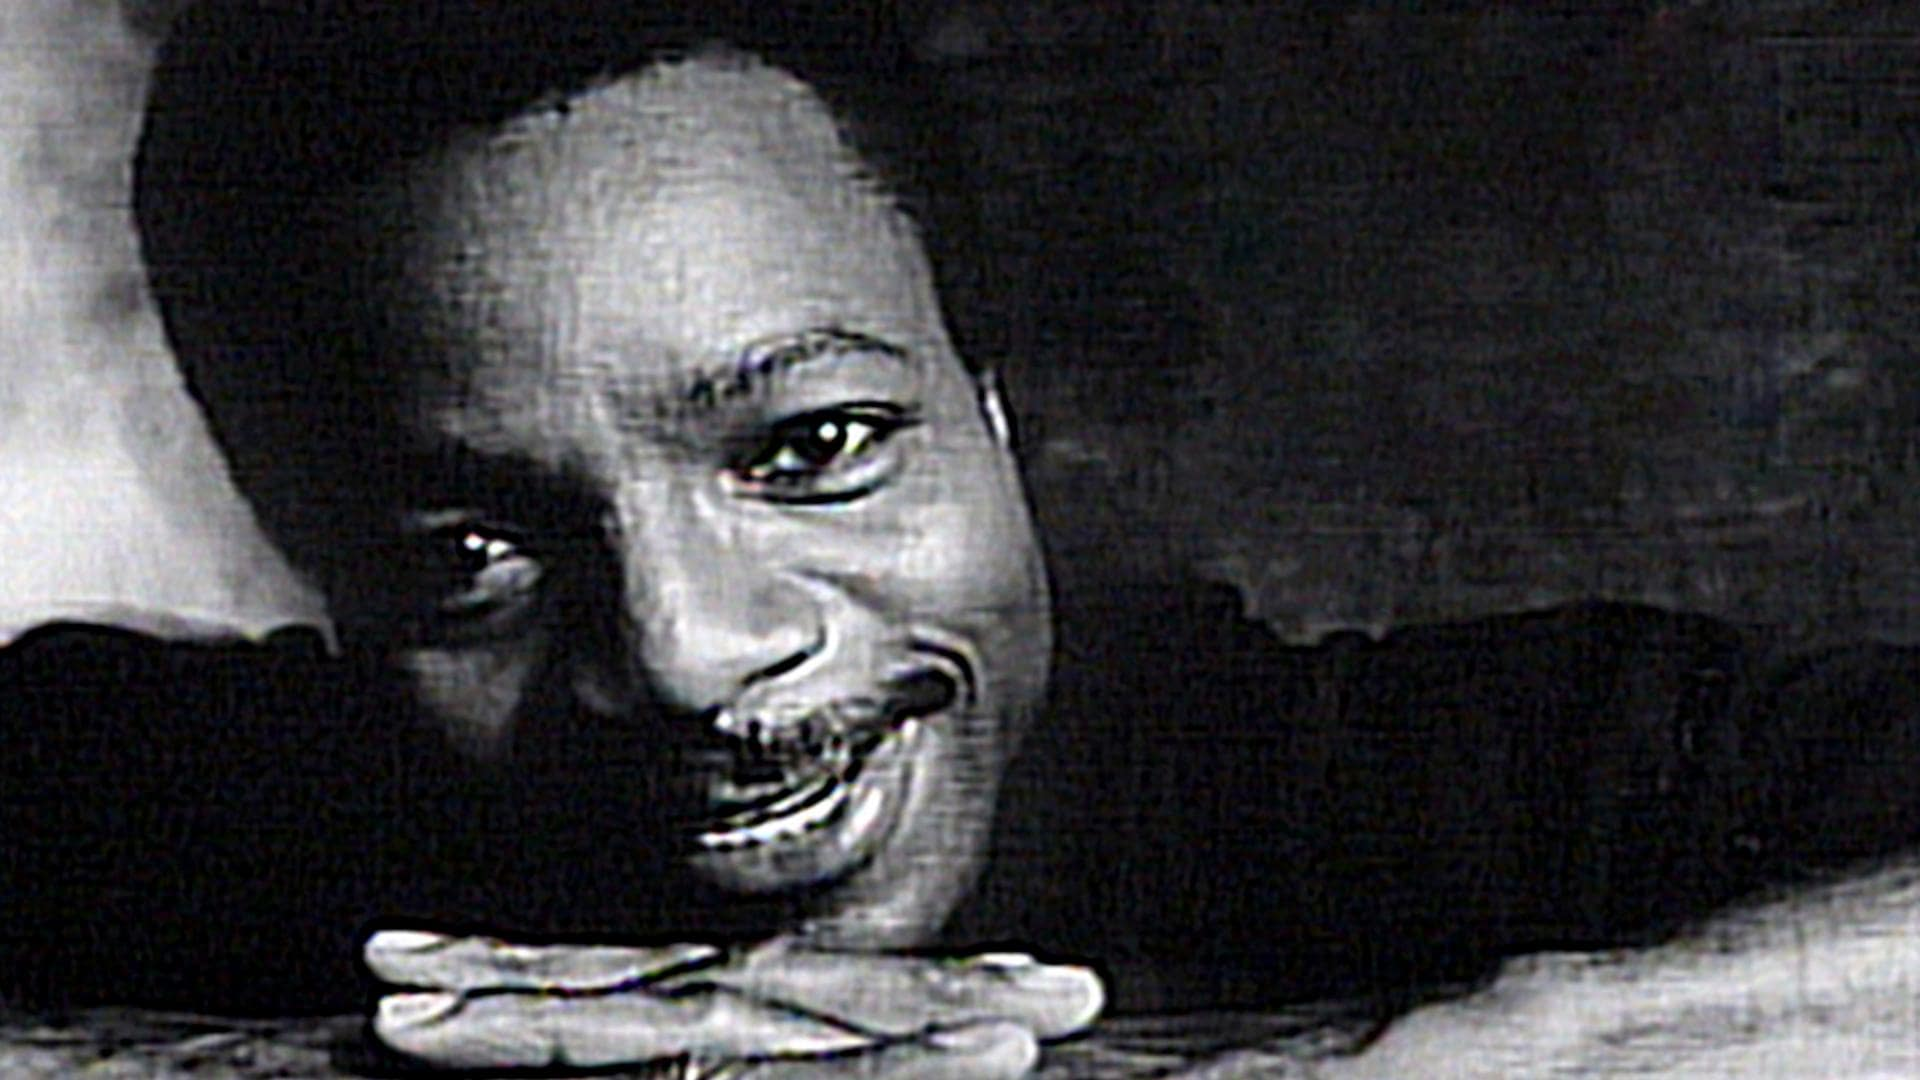 Carl Weathers: January 30, 1988